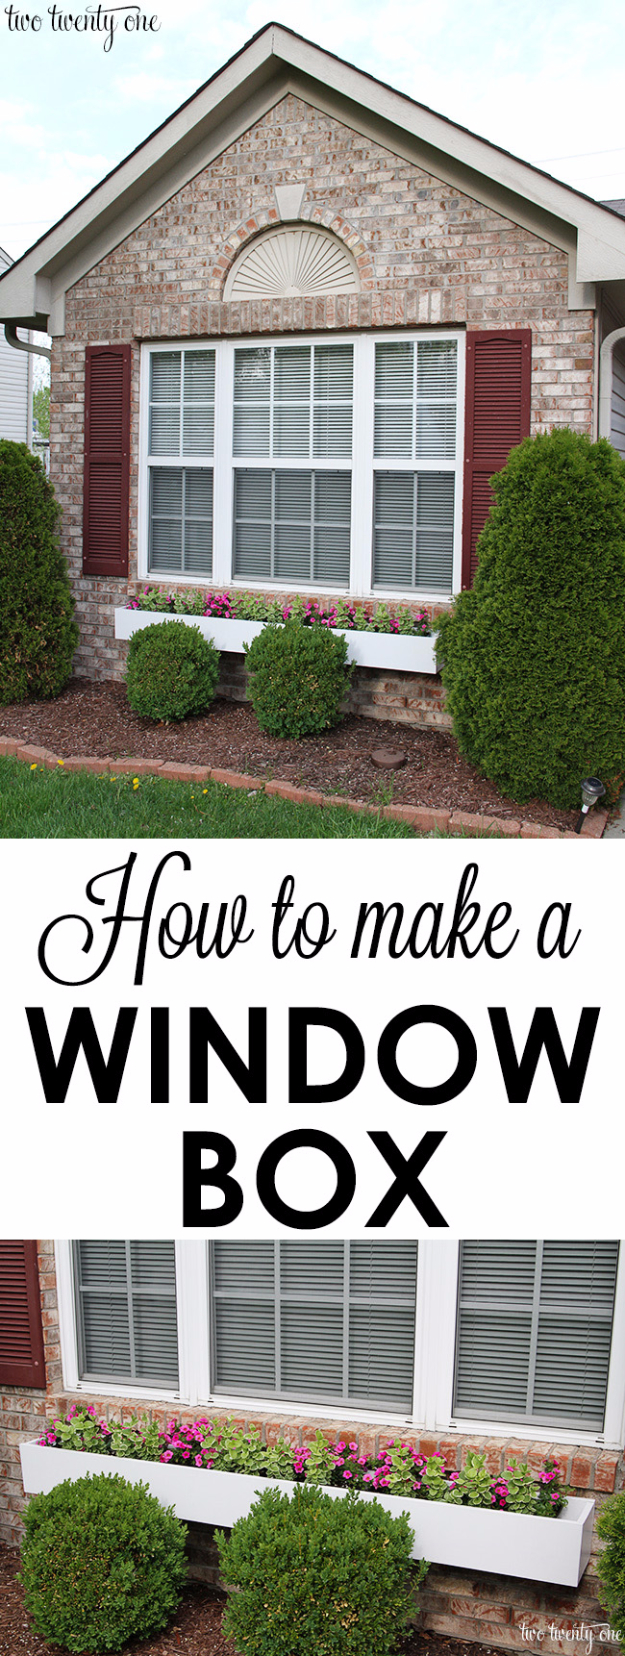 Creative Ways to Increase Curb Appeal on A Budget - DIY Window Box - Cheap and Easy Ideas for Upgrading Your Front Porch, Landscaping, Driveways, Garage Doors, Brick and Home Exteriors. Add Window Boxes, House Numbers, Mailboxes and Yard Makeovers http://diyjoy.com/diy-curb-appeal-ideas